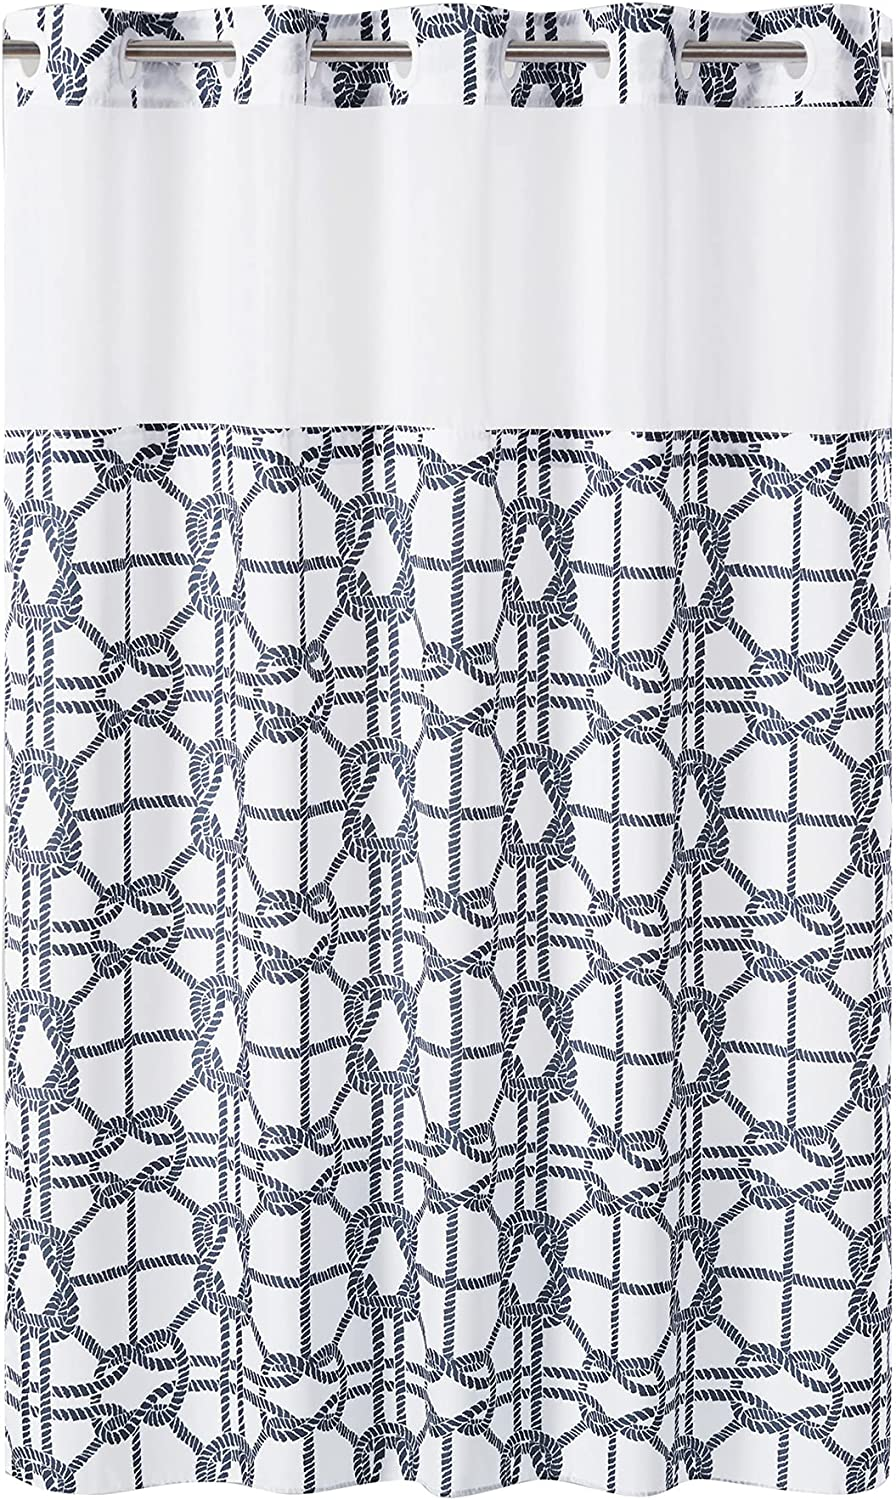 Hookless Nautical Lattice Shower Curtain with Ranking TOP16 X 7 71 Liner Superior Peva